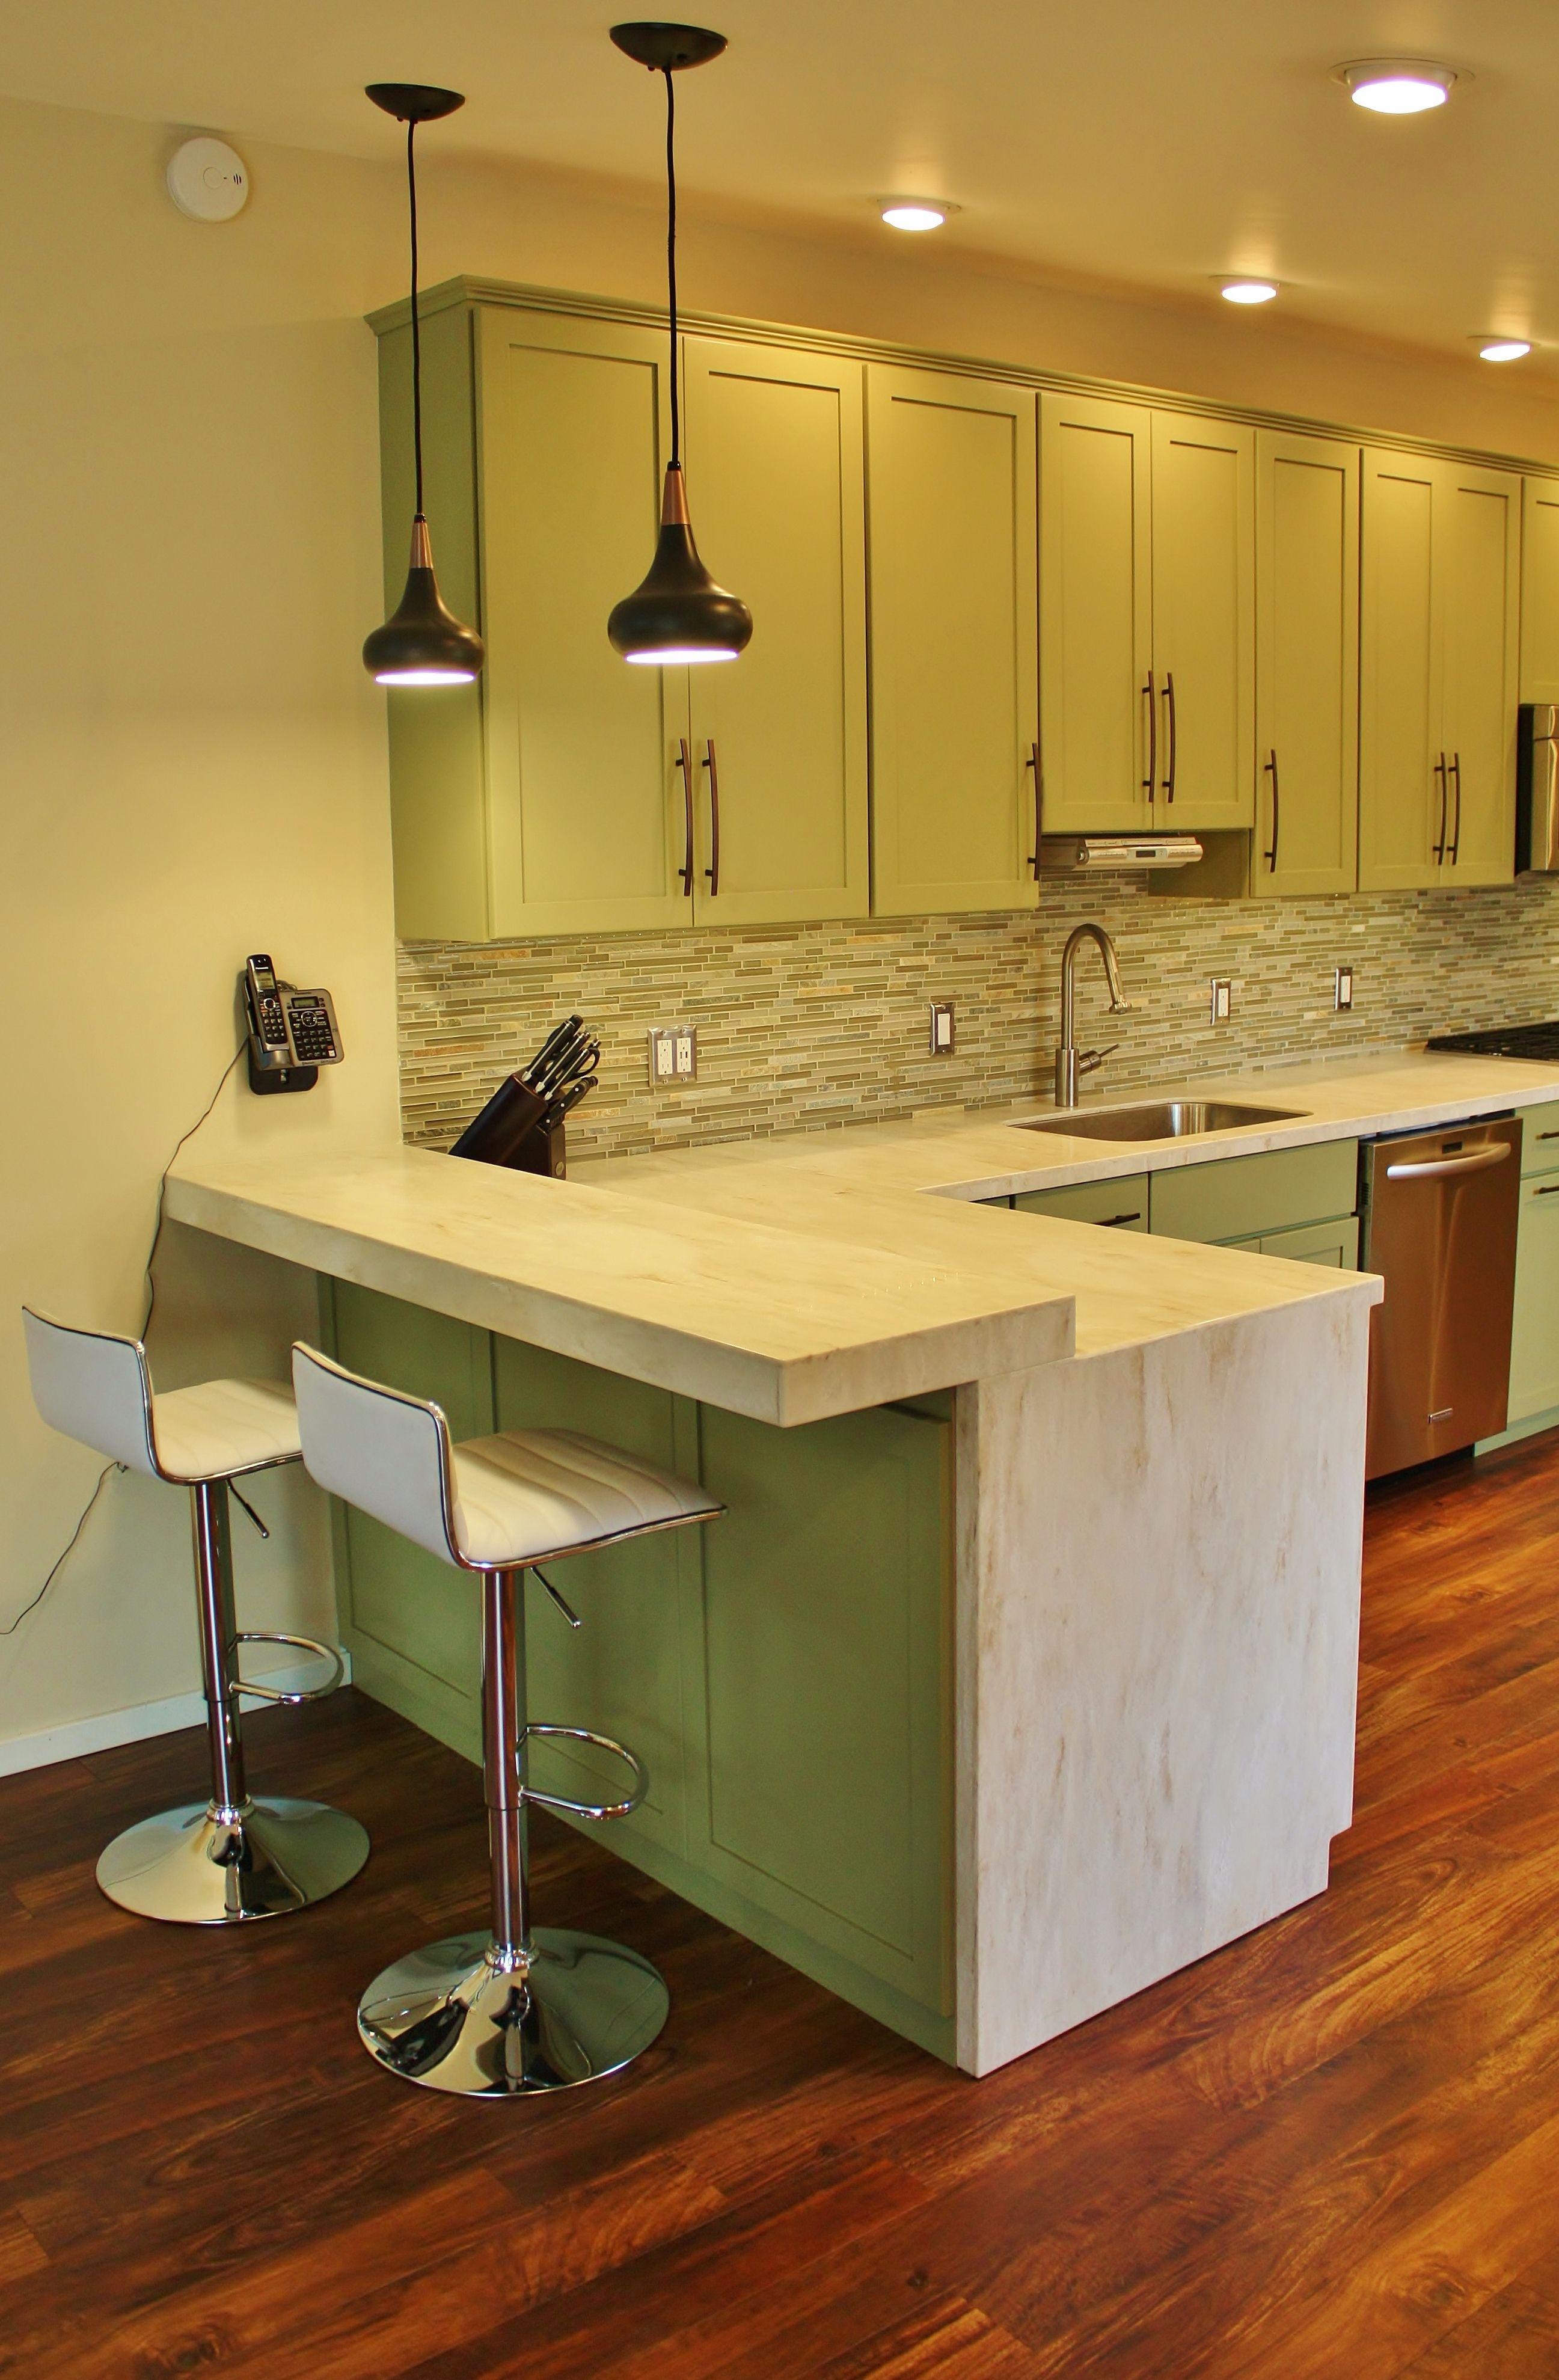 Holiday Kitchens Seattle Shaker Cabinets Corian Solid Surface Countertops Kosher Kitchen Glass Doors Wi Kosher Kitchen Waterfall Countertop Holiday Kitchen